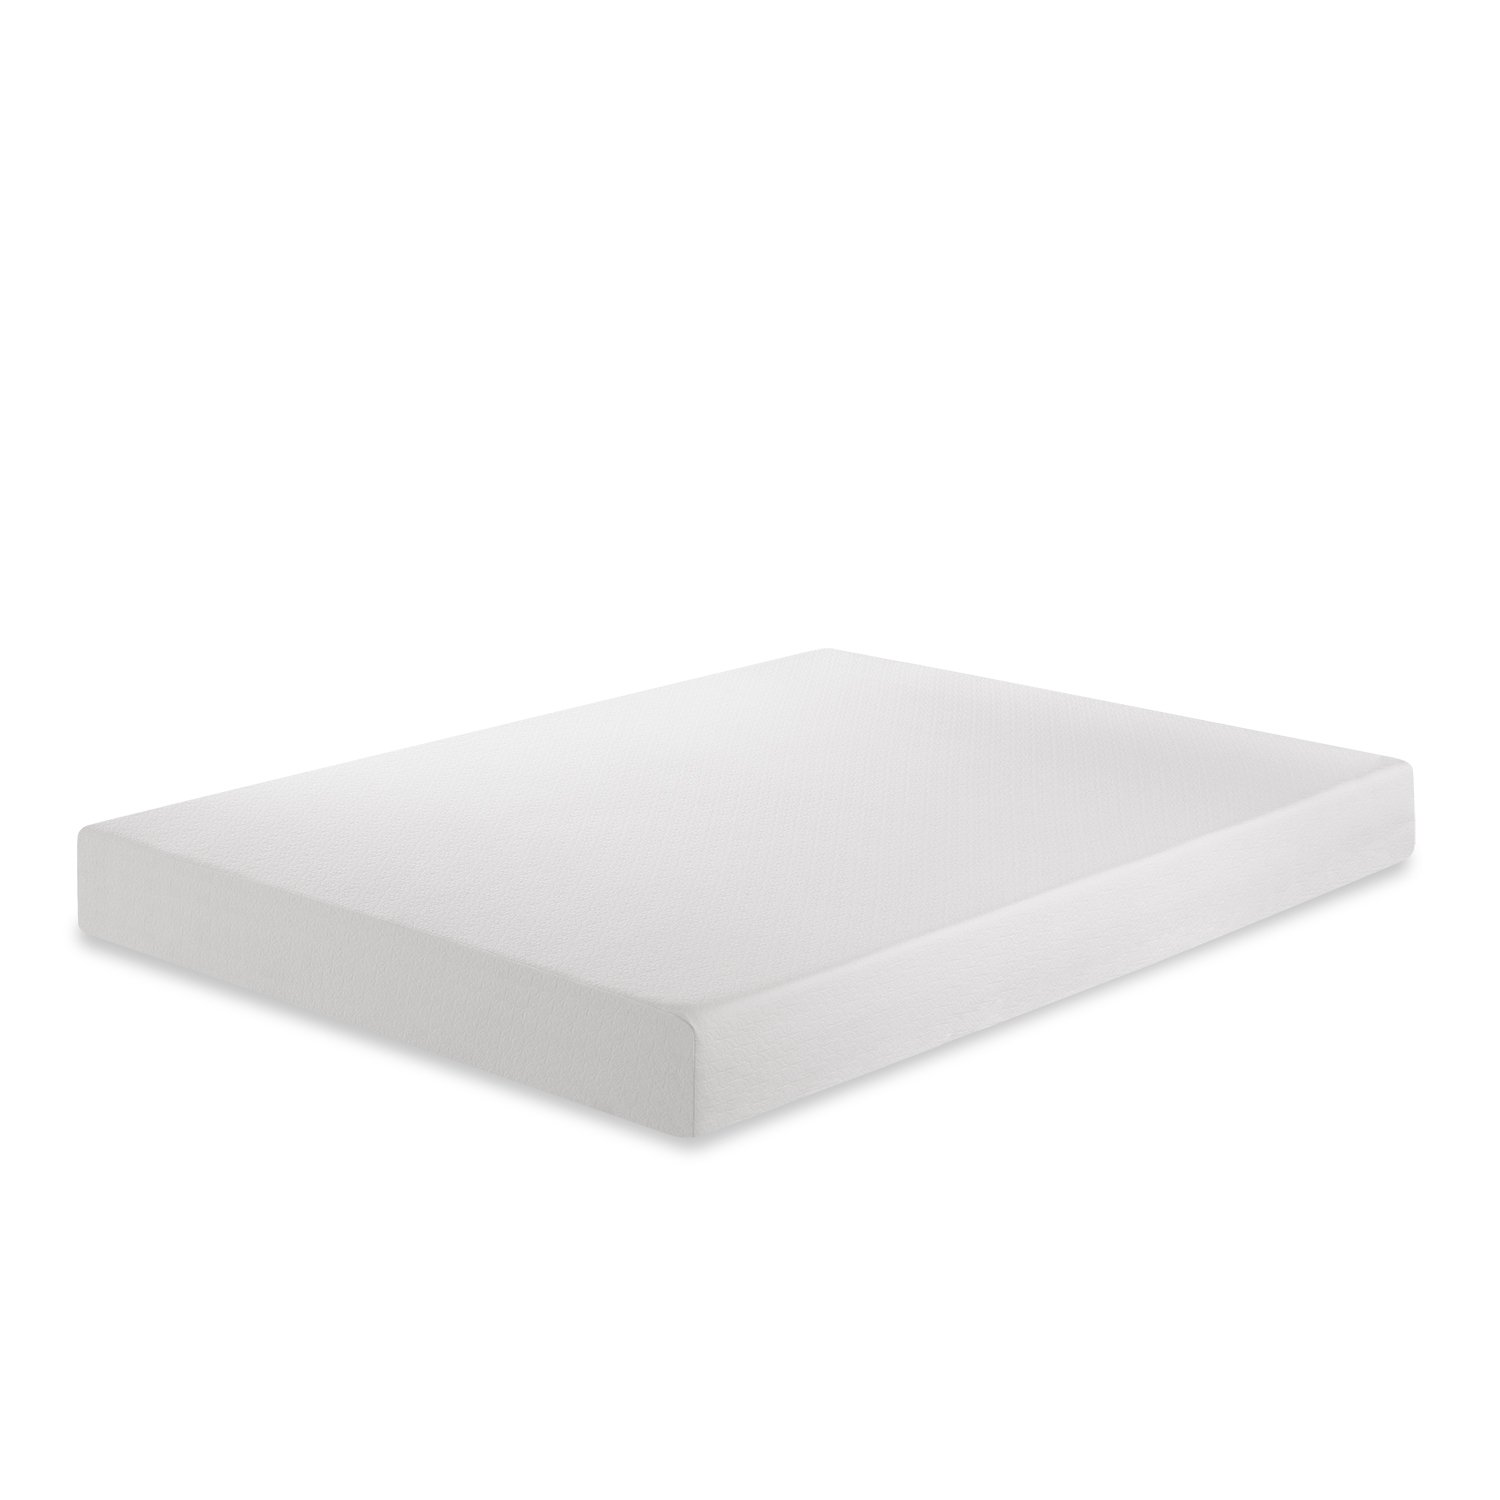 most mail affordable order products landscape plus by bed front mattress the saturn eight smart view